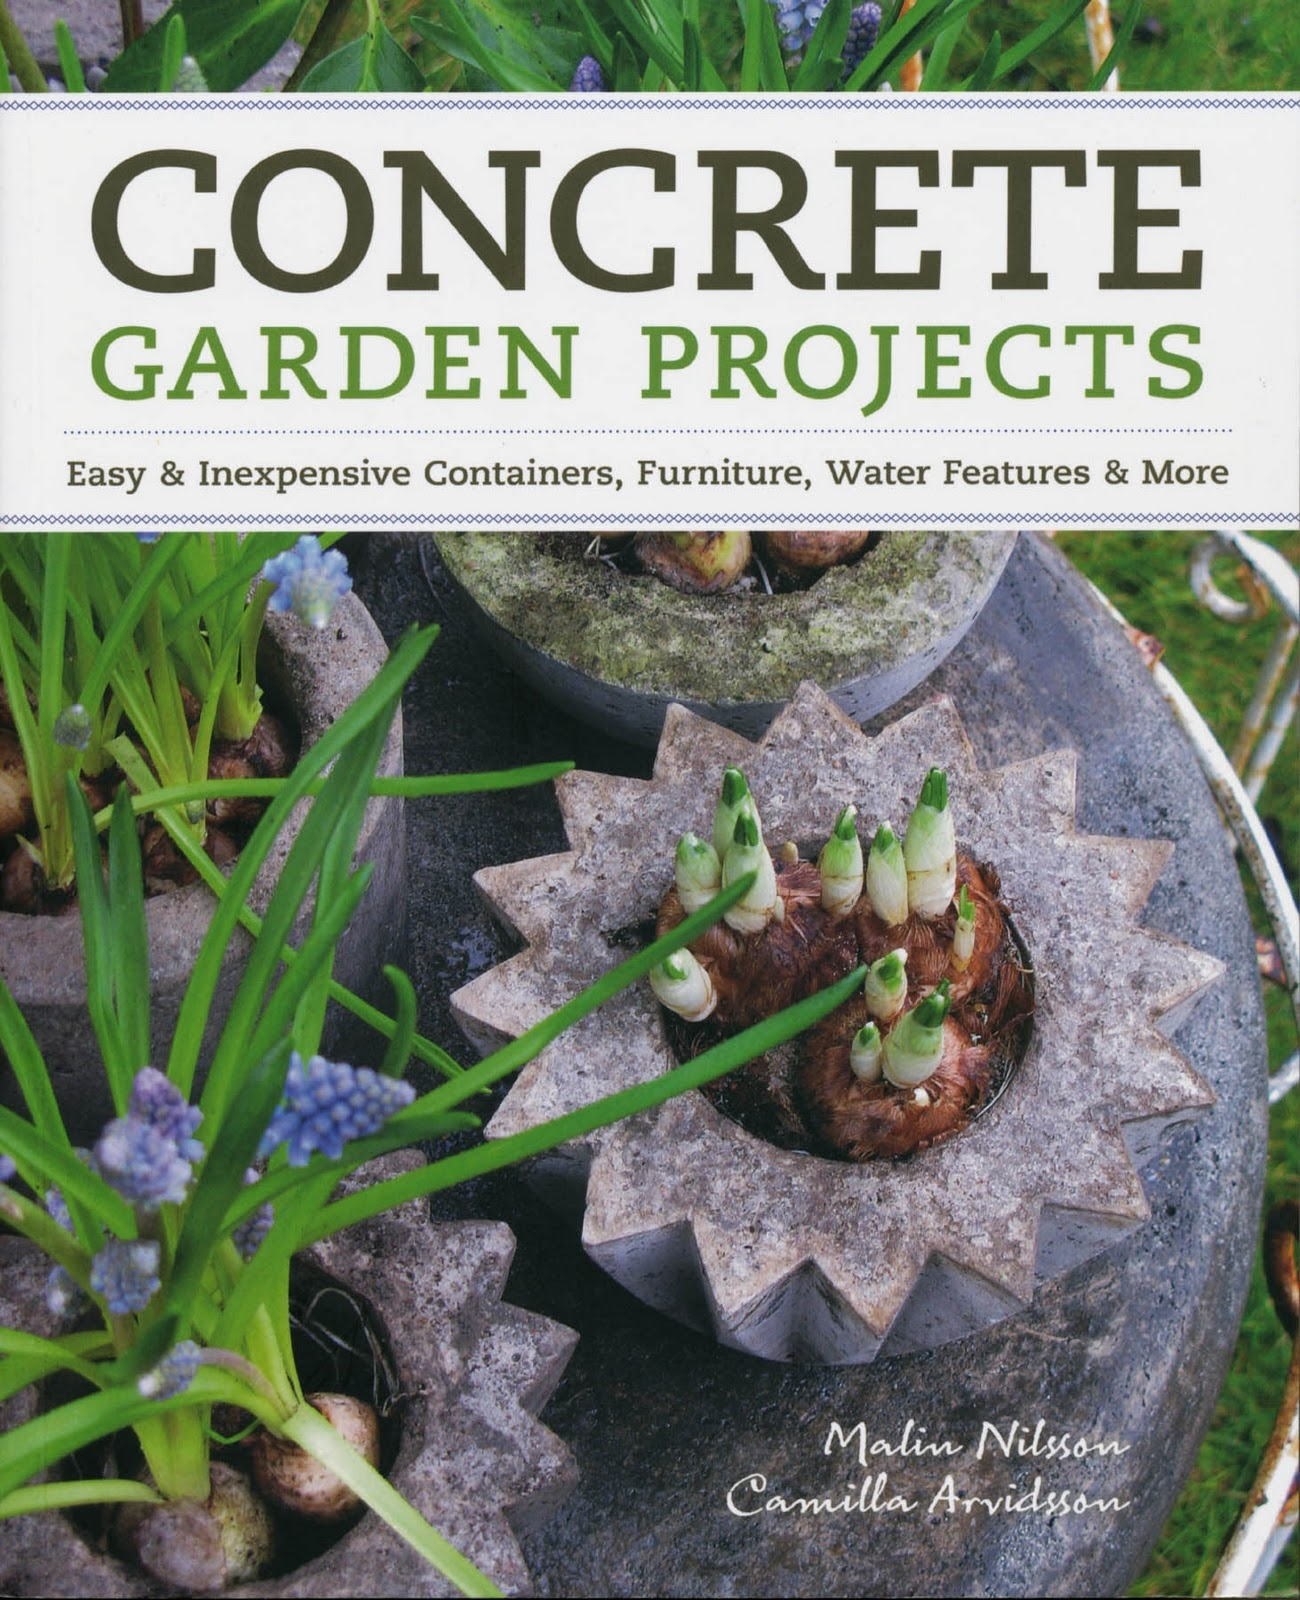 concrete-garden-projects-871-concrete-garden-projects-is-both-fascinating-and-highly-practical-1300-x-1600